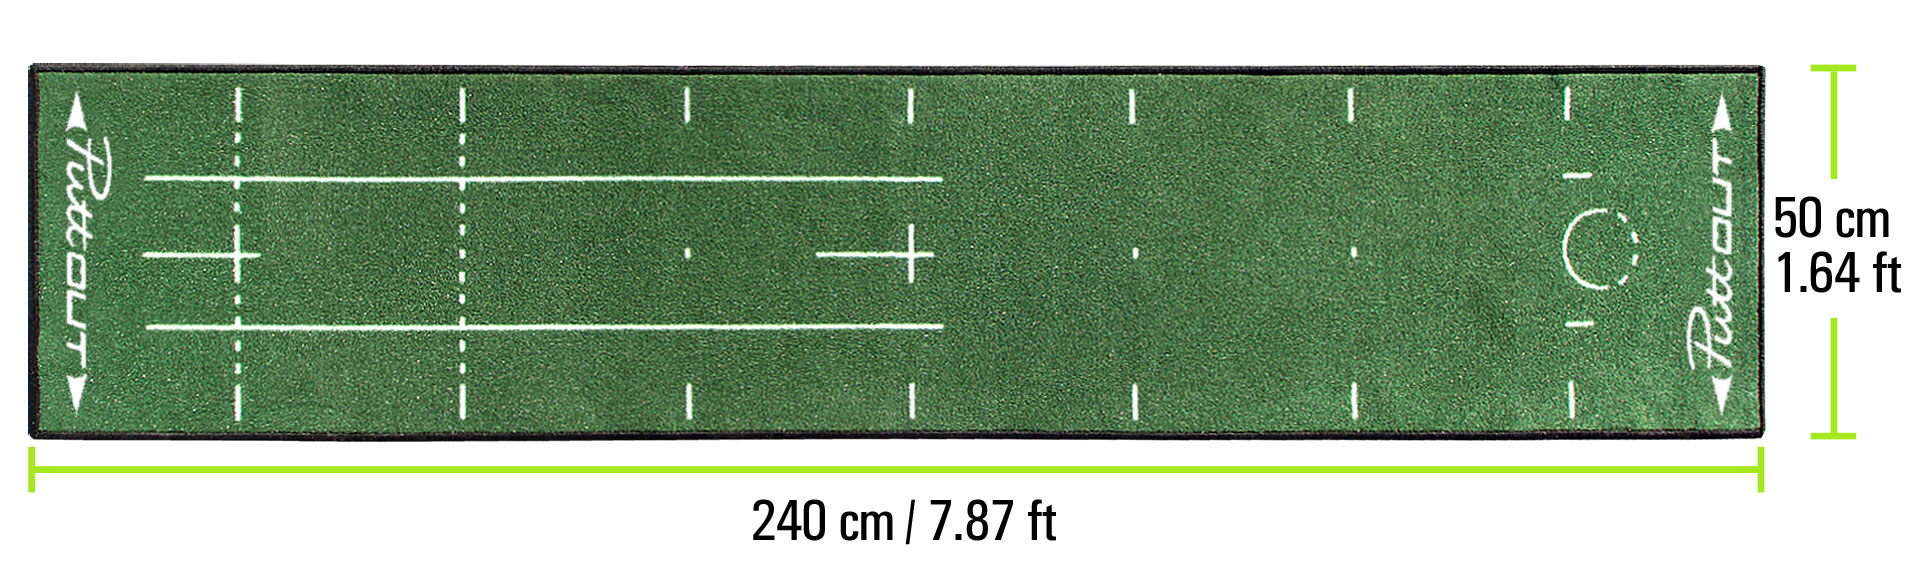 PuttOUT Mat Dimensions Green